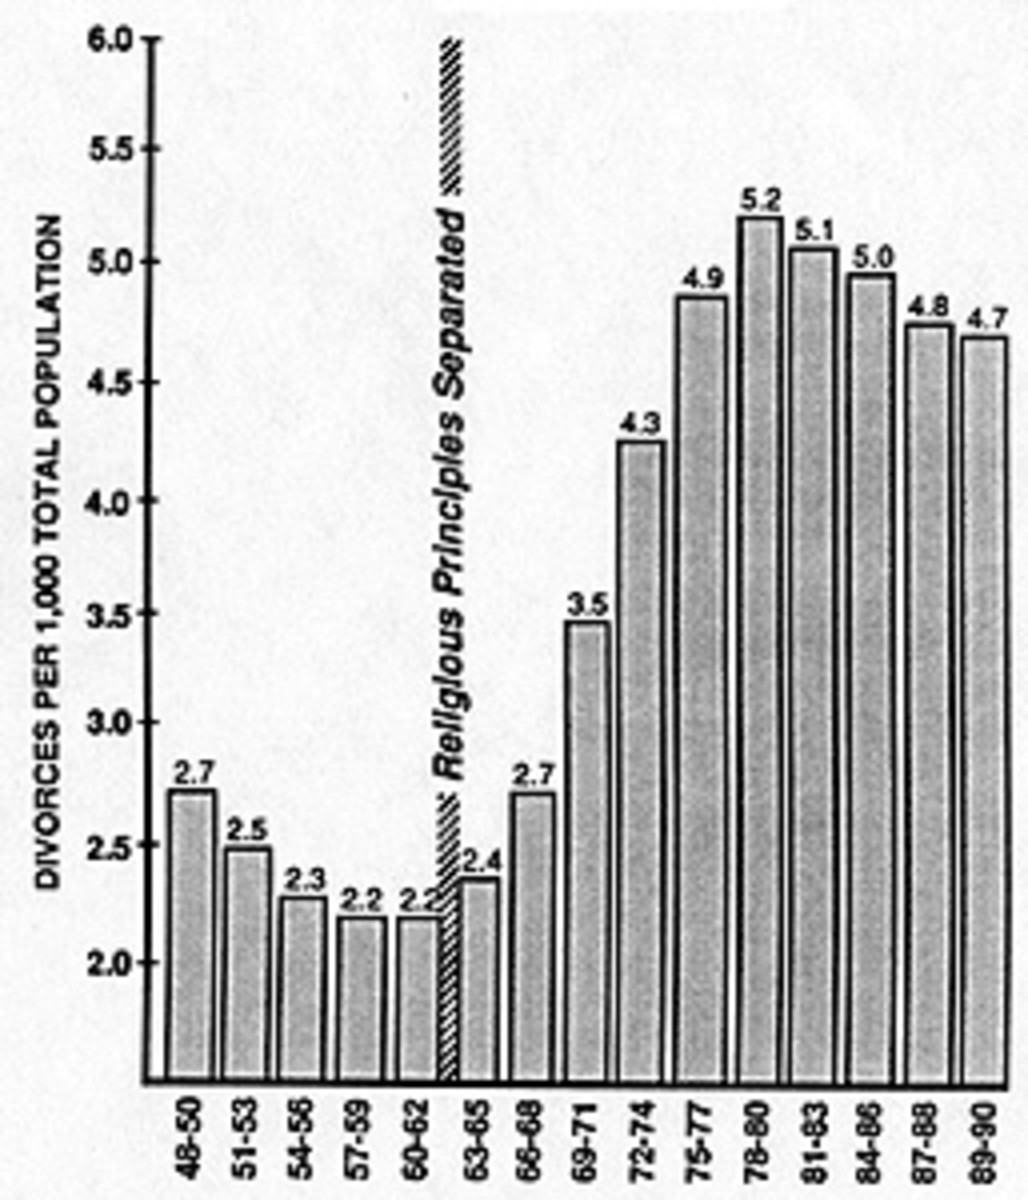 This chart illustrates the number of divorces before and after Engel v. Vitale (1963). This study correlates the frequency of divorces with government endorsement of a particular belief system in schools.